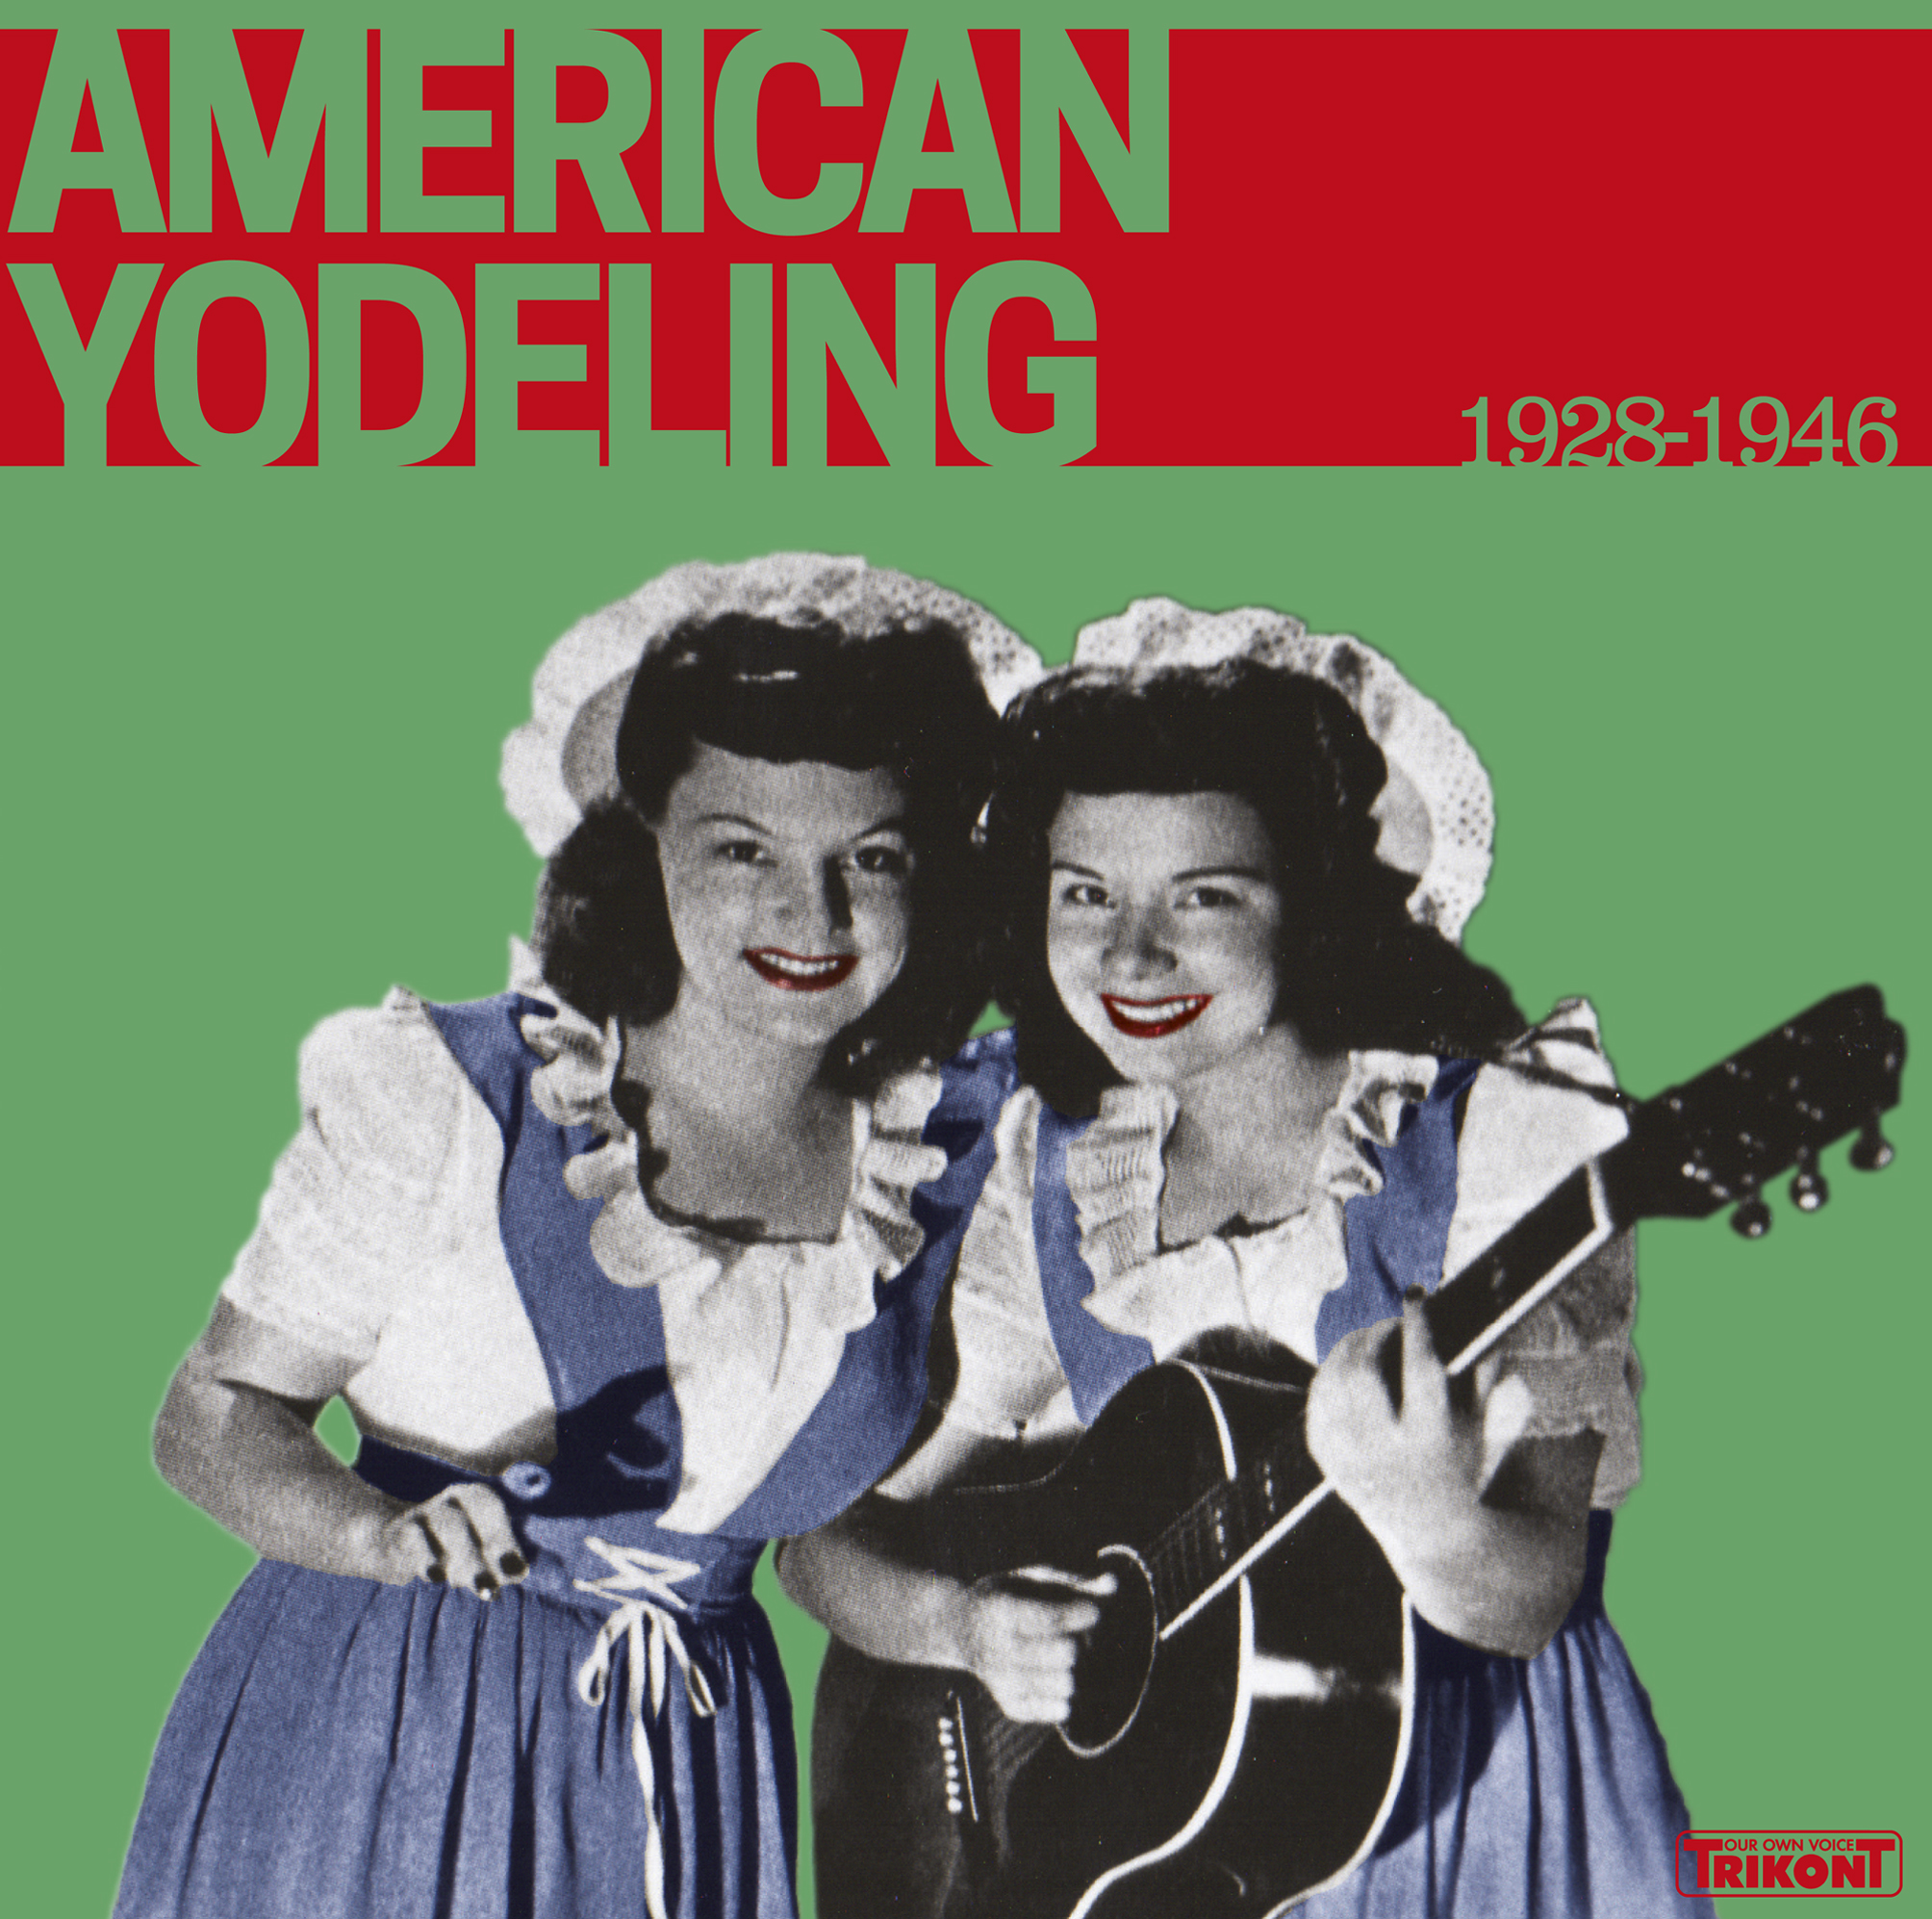 Emerican Yodeling Cover Vinyl-Edition